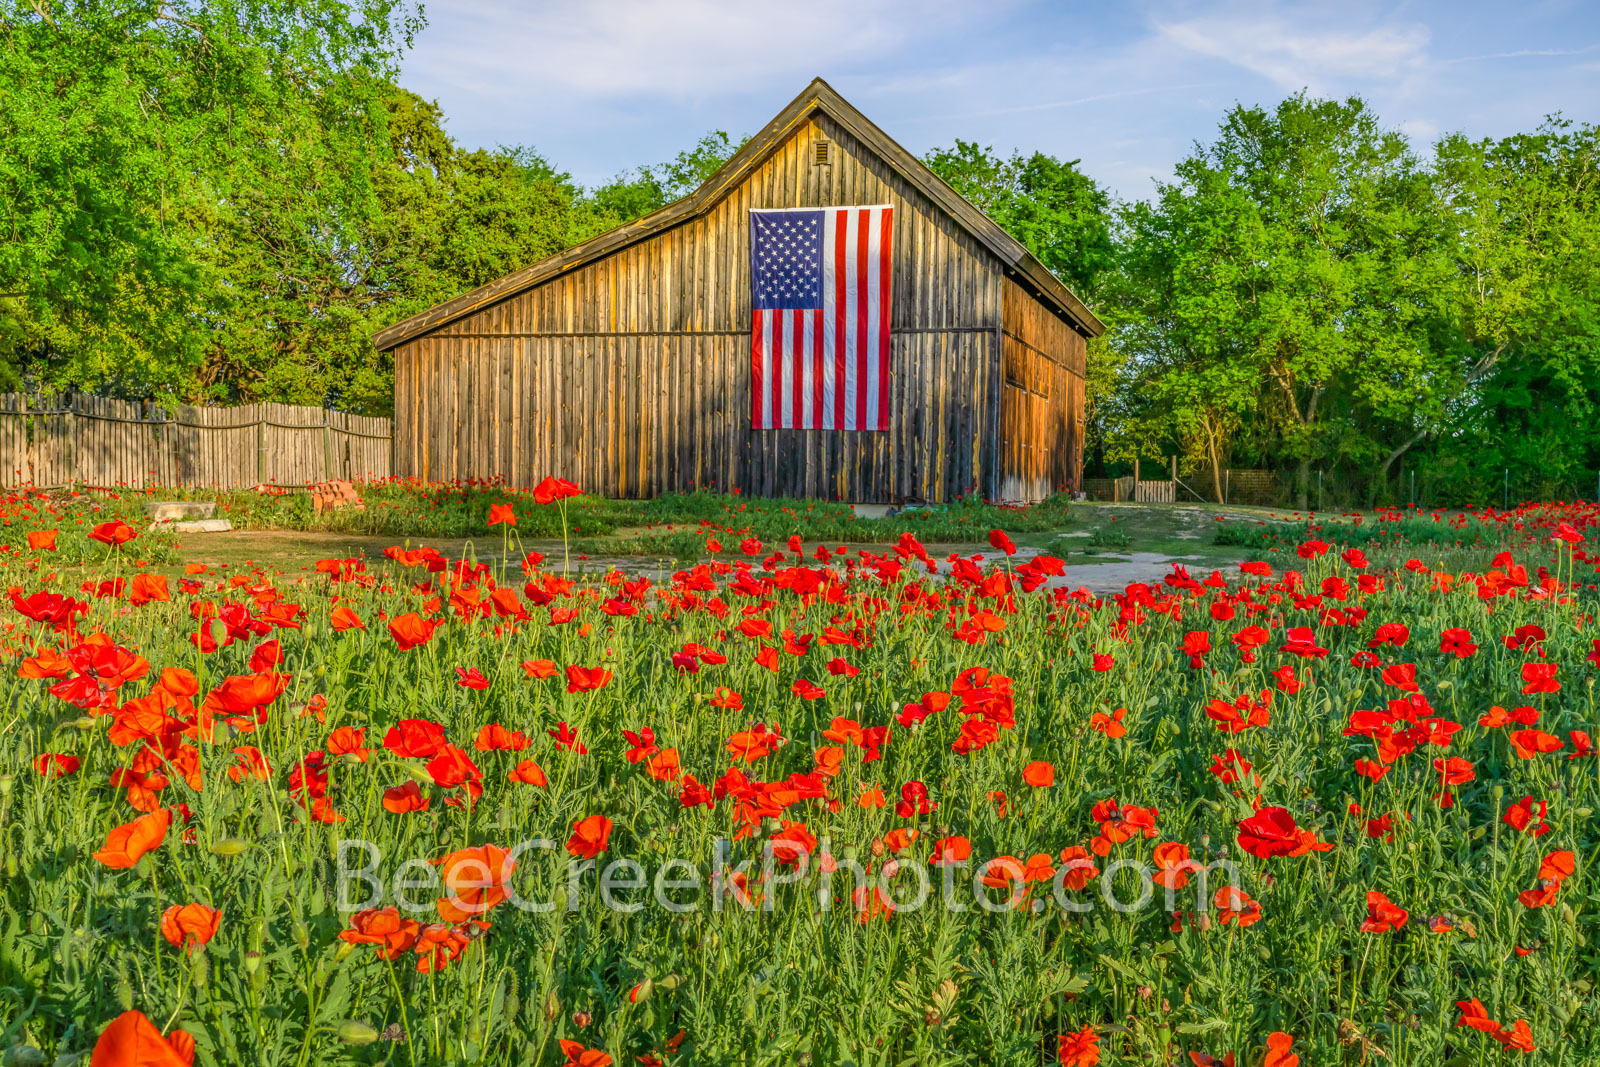 Vintage Barn Old Glory and Poppies - We were surprise with this old vintage barn with the American flag drapped on the side and...